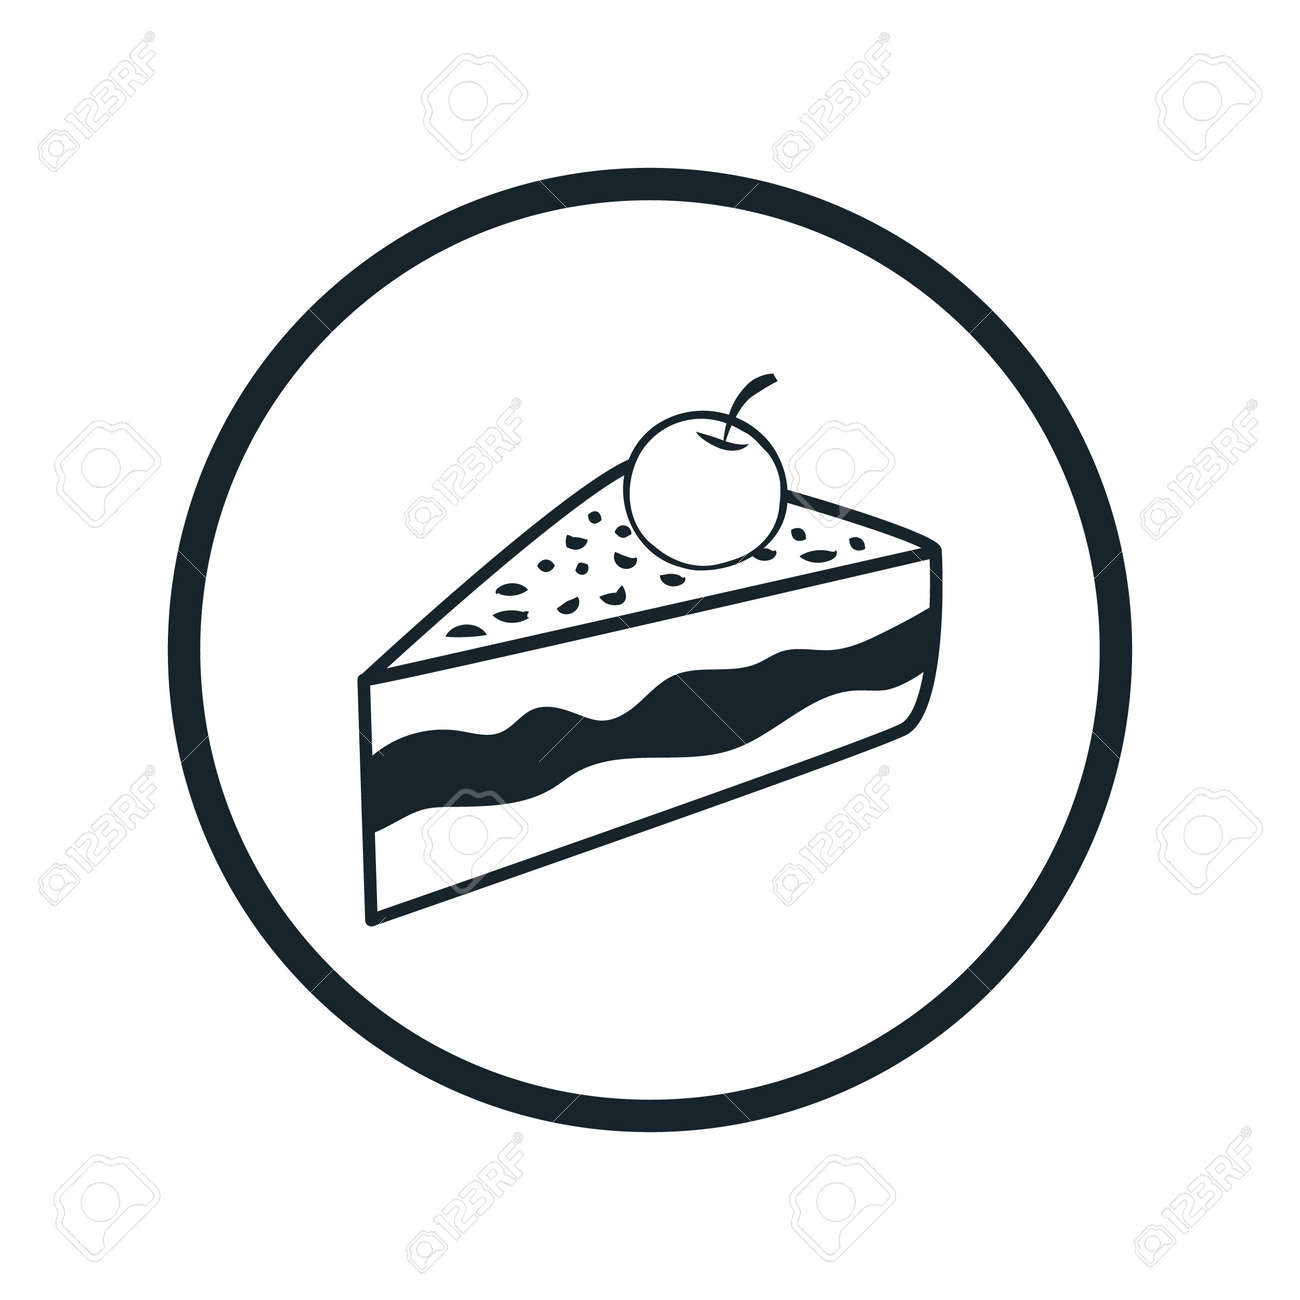 Cake Icon Royalty Free Cliparts Vectors And Stock Illustration